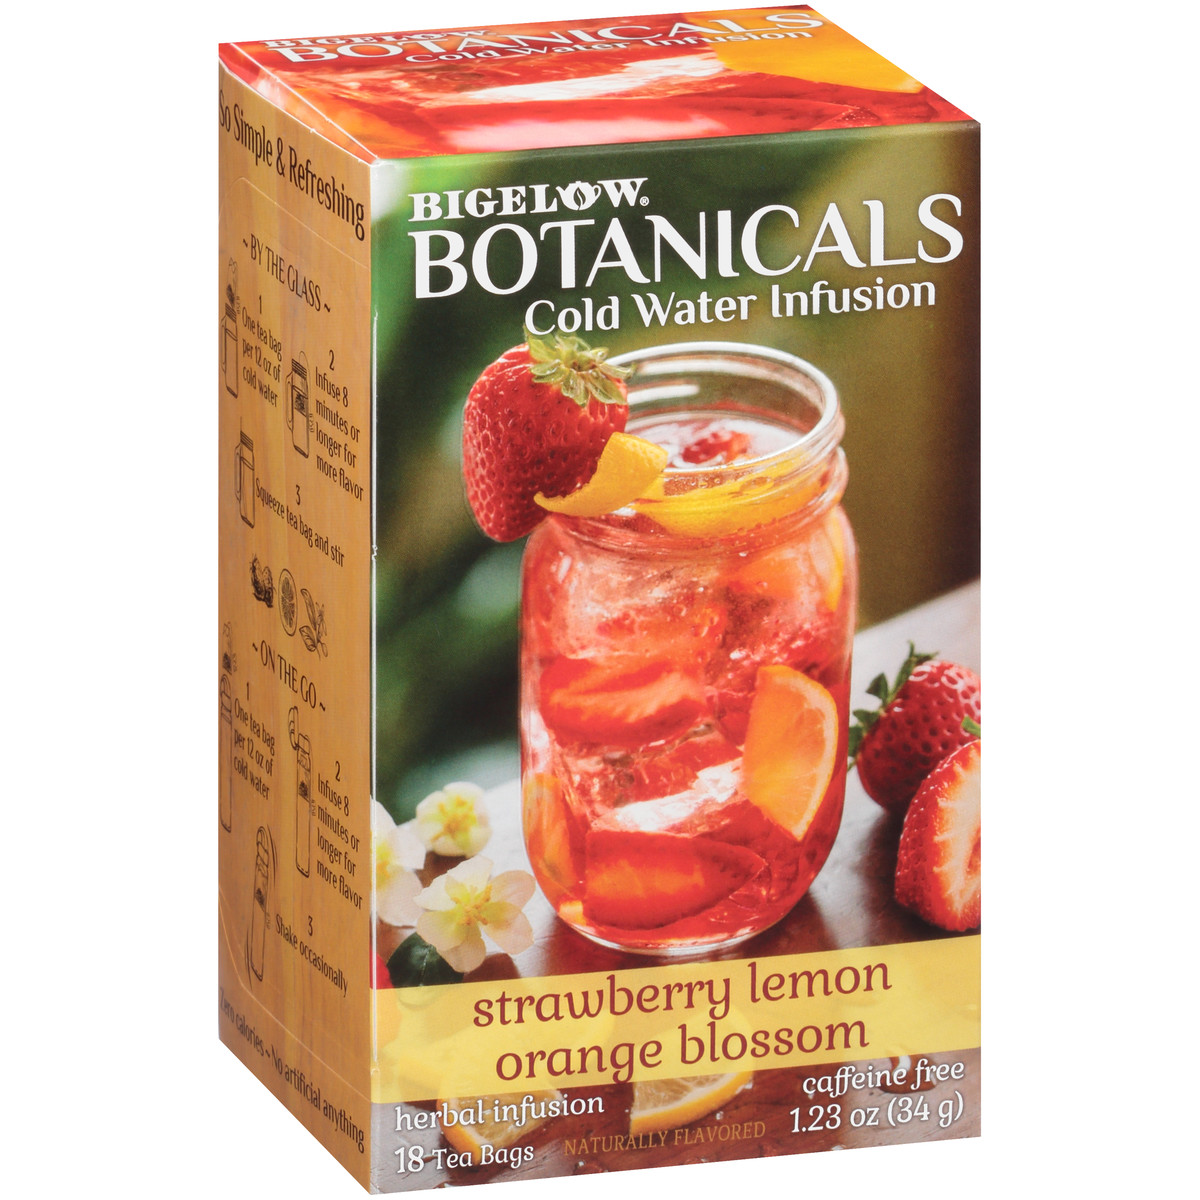 Strawberry Lemon Orange Blossom Cold Water Infusion Caffeine Free 108 TB (case of 6 boxes)